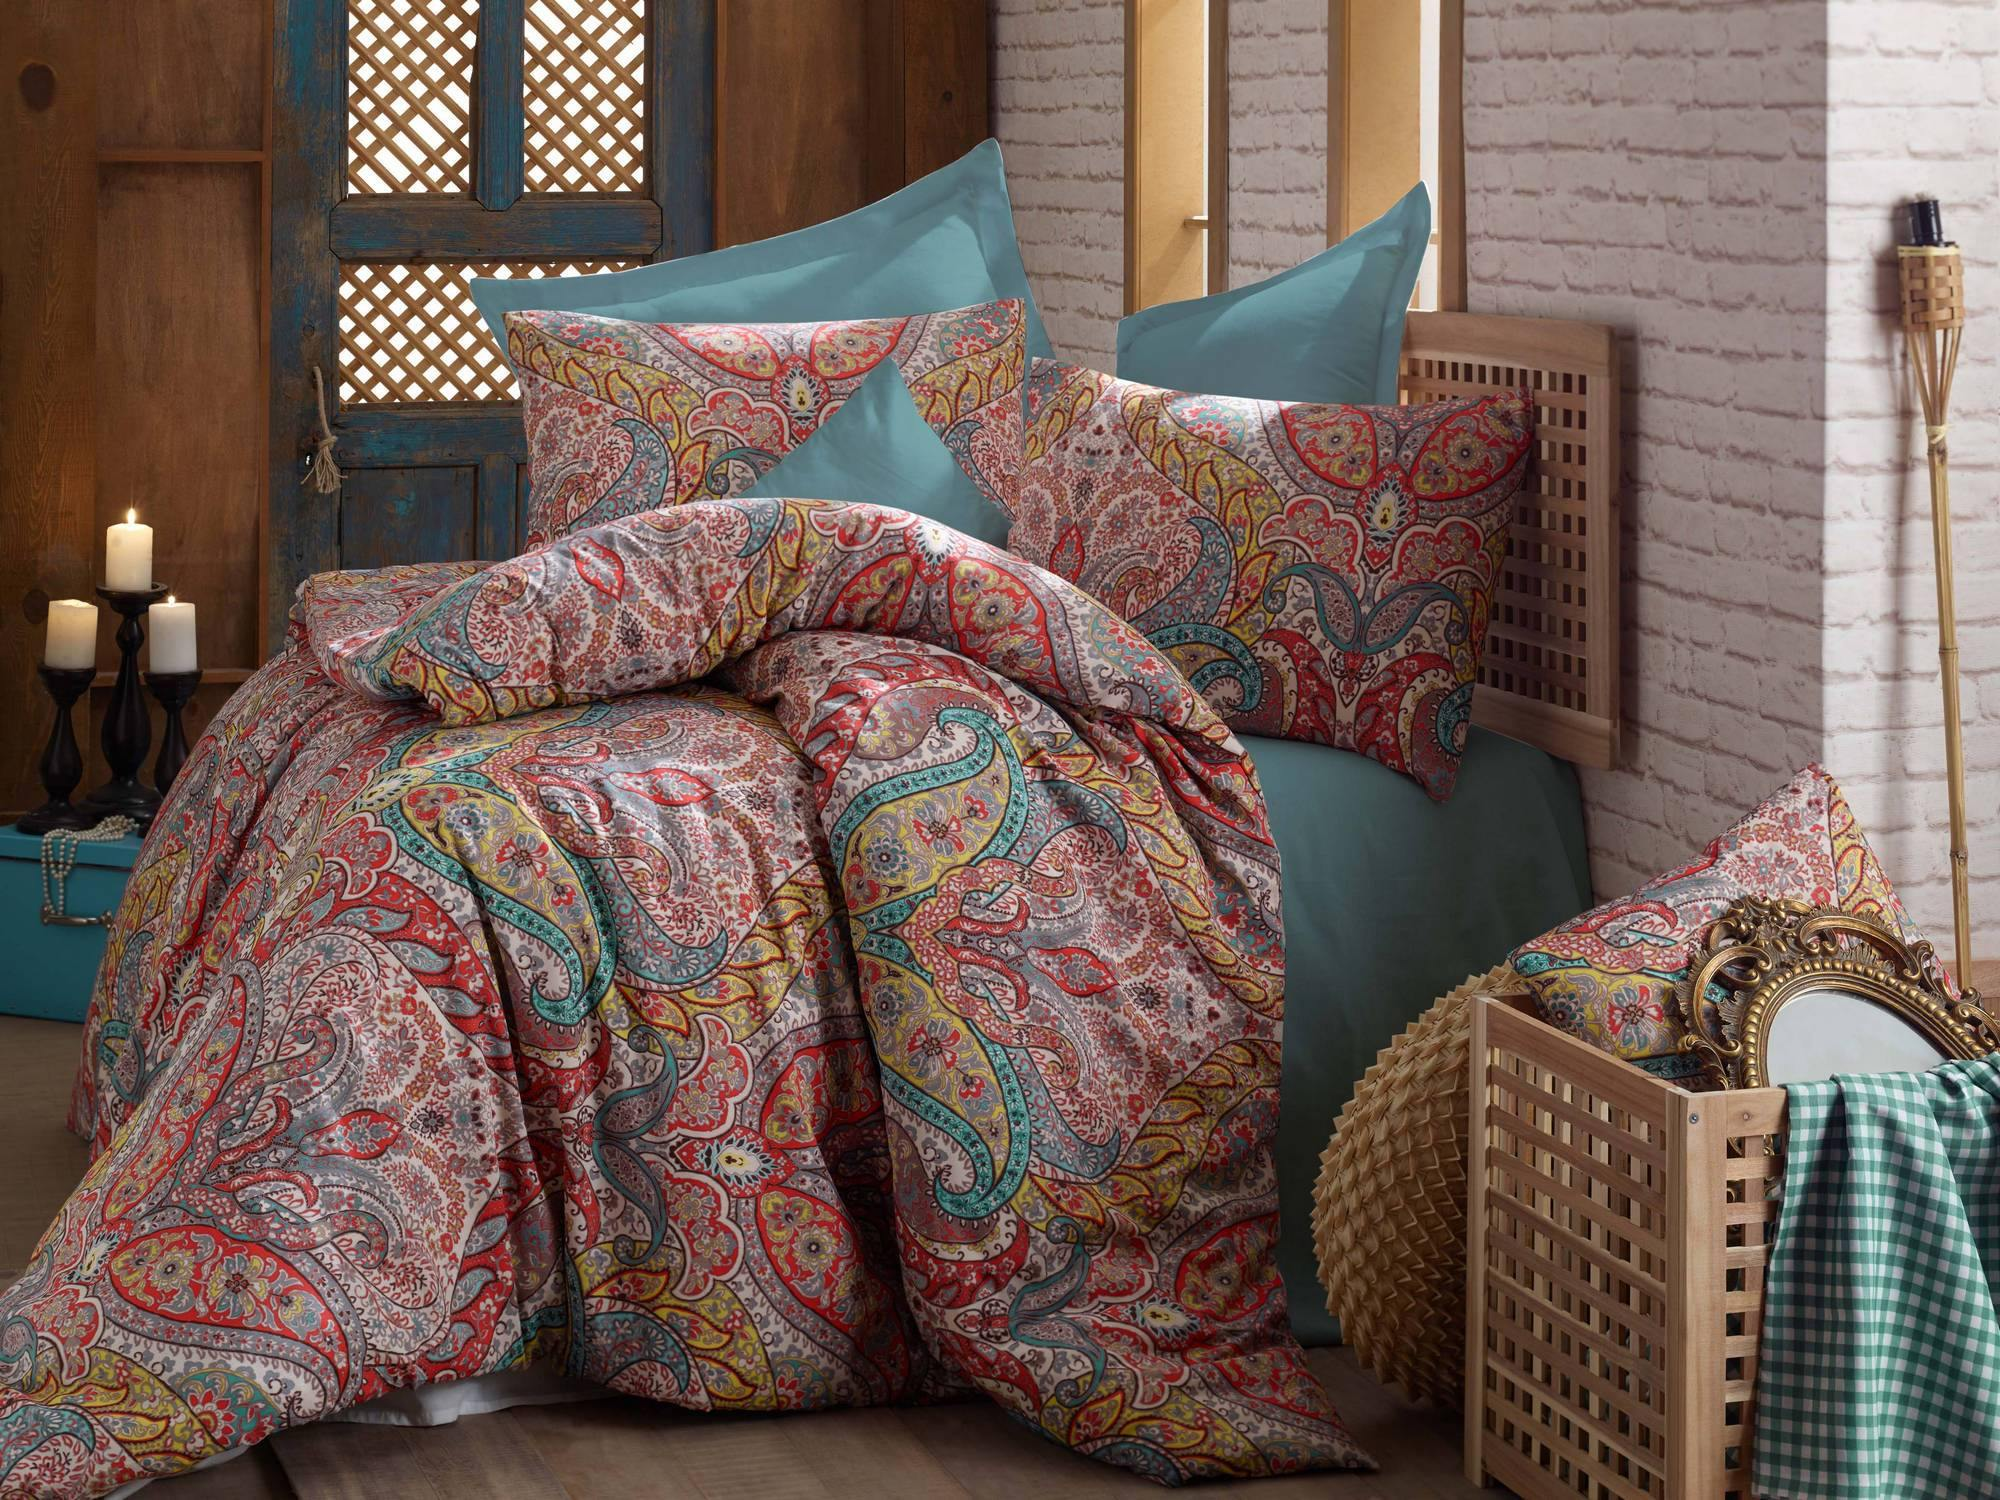 Gemeos 100% Turkish Cotton Queen Size 3 Piece Duvet Cover Quilt Bedding Set - Combination of Beige, Red, Turquoise and Grey Colors - Decorotika